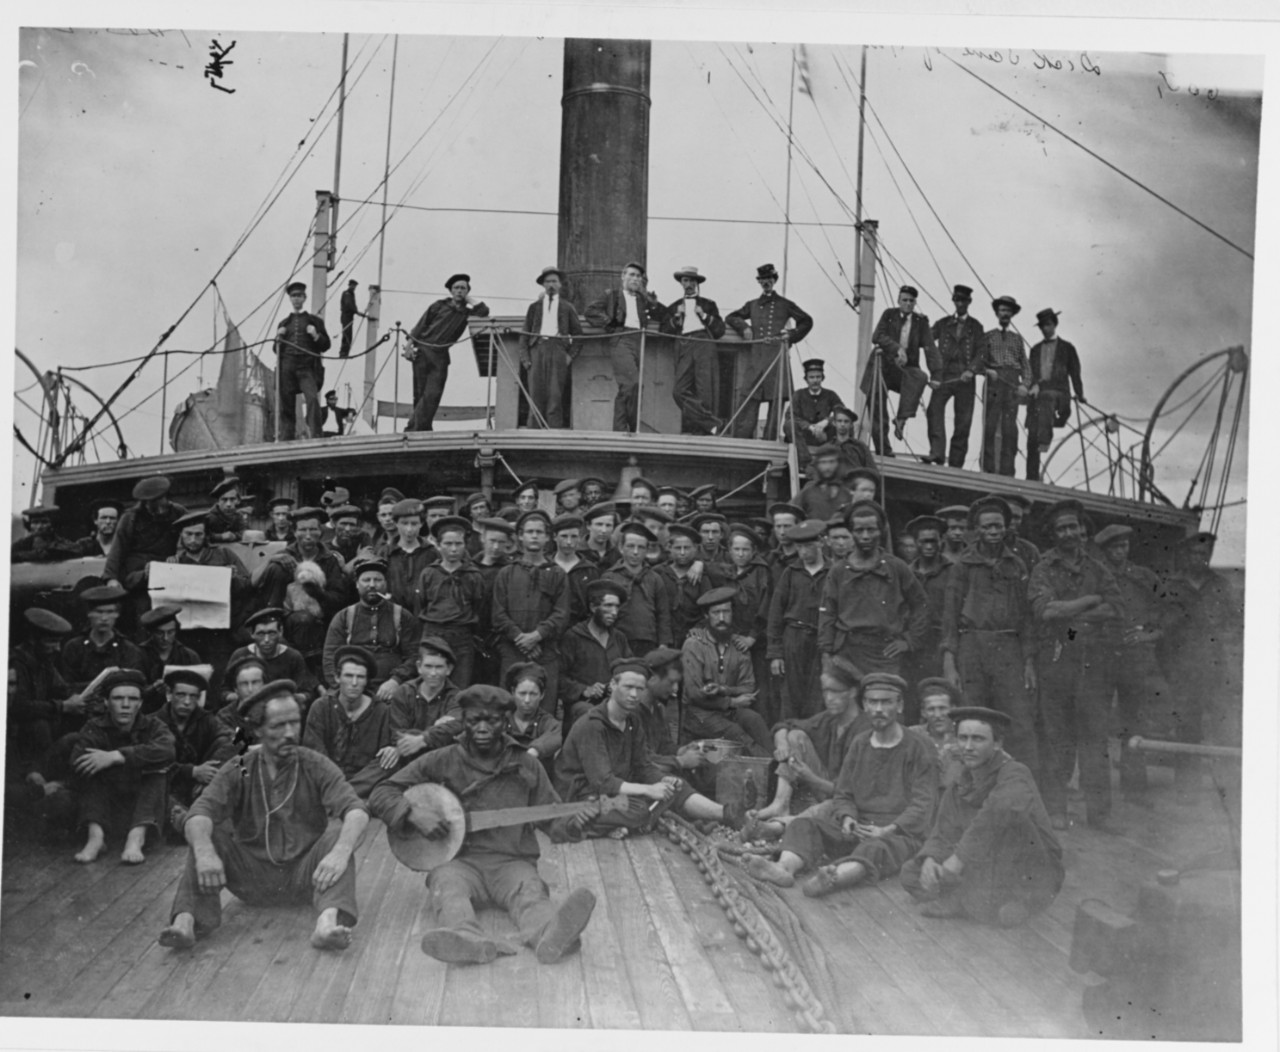 Officers and crew on the USS Hunchback, 1864-1865